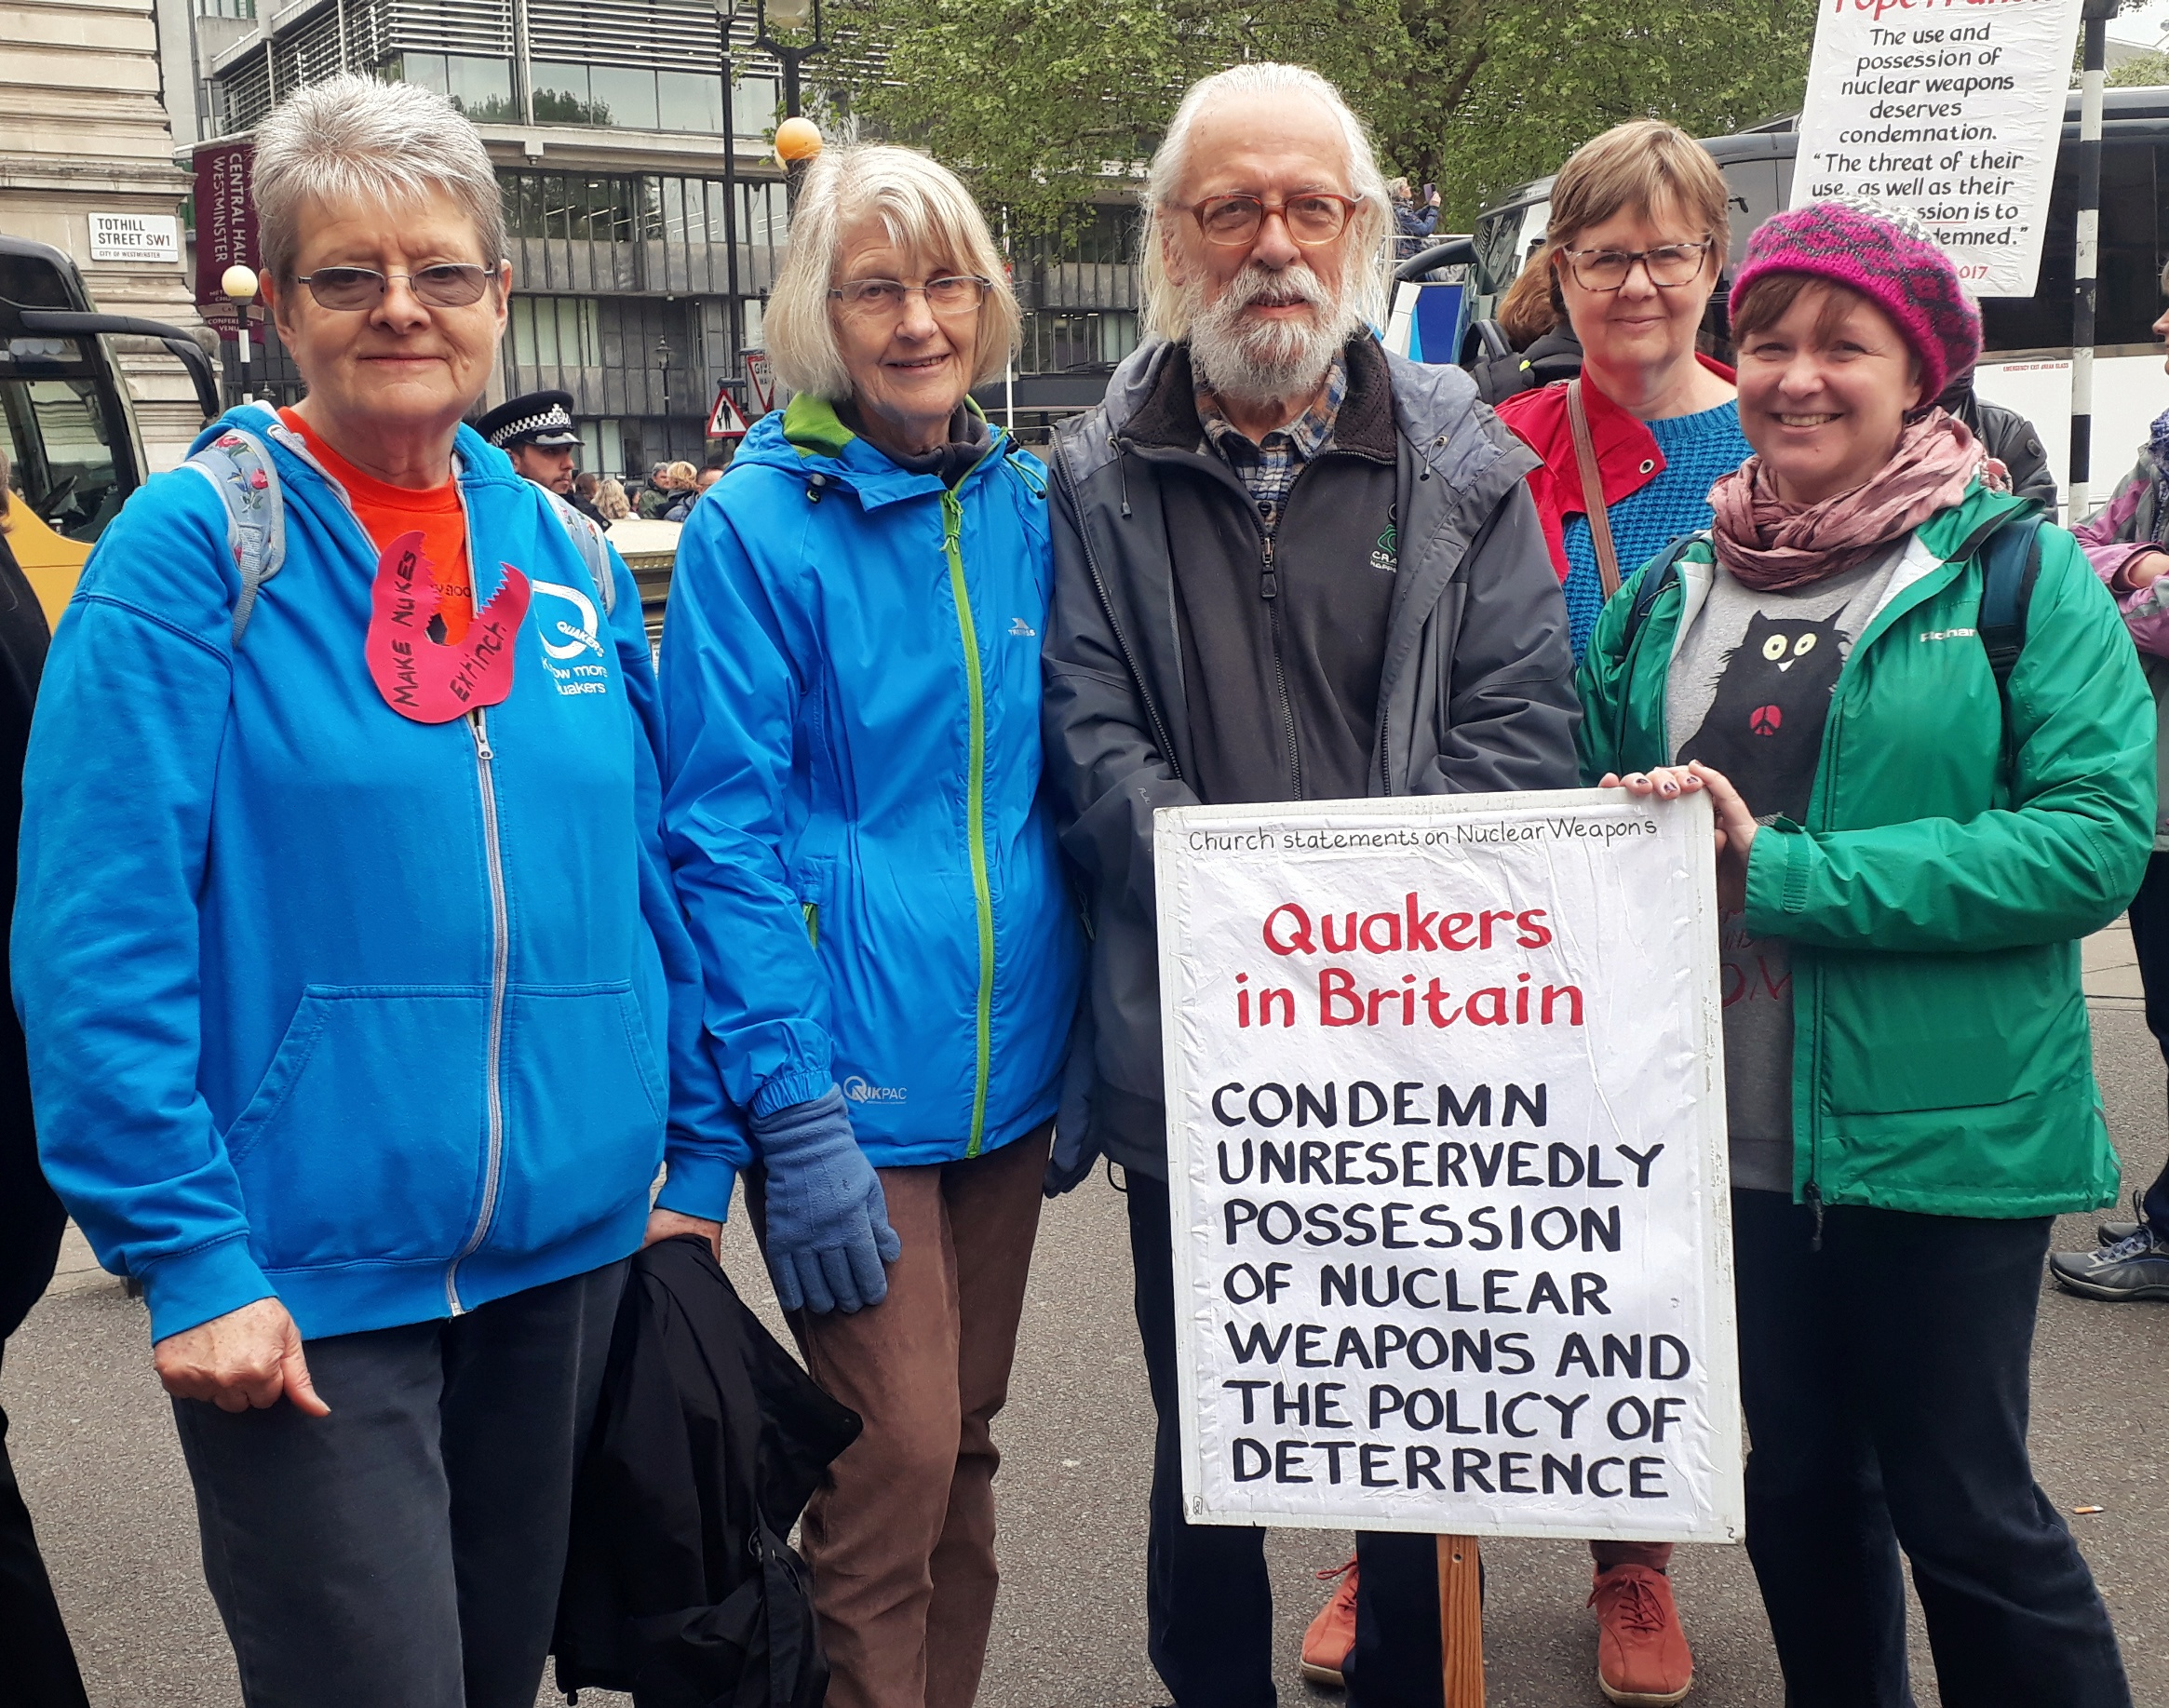 Quakers standing outside Westminster Abbey holding banners saying peace or Quakers for peace